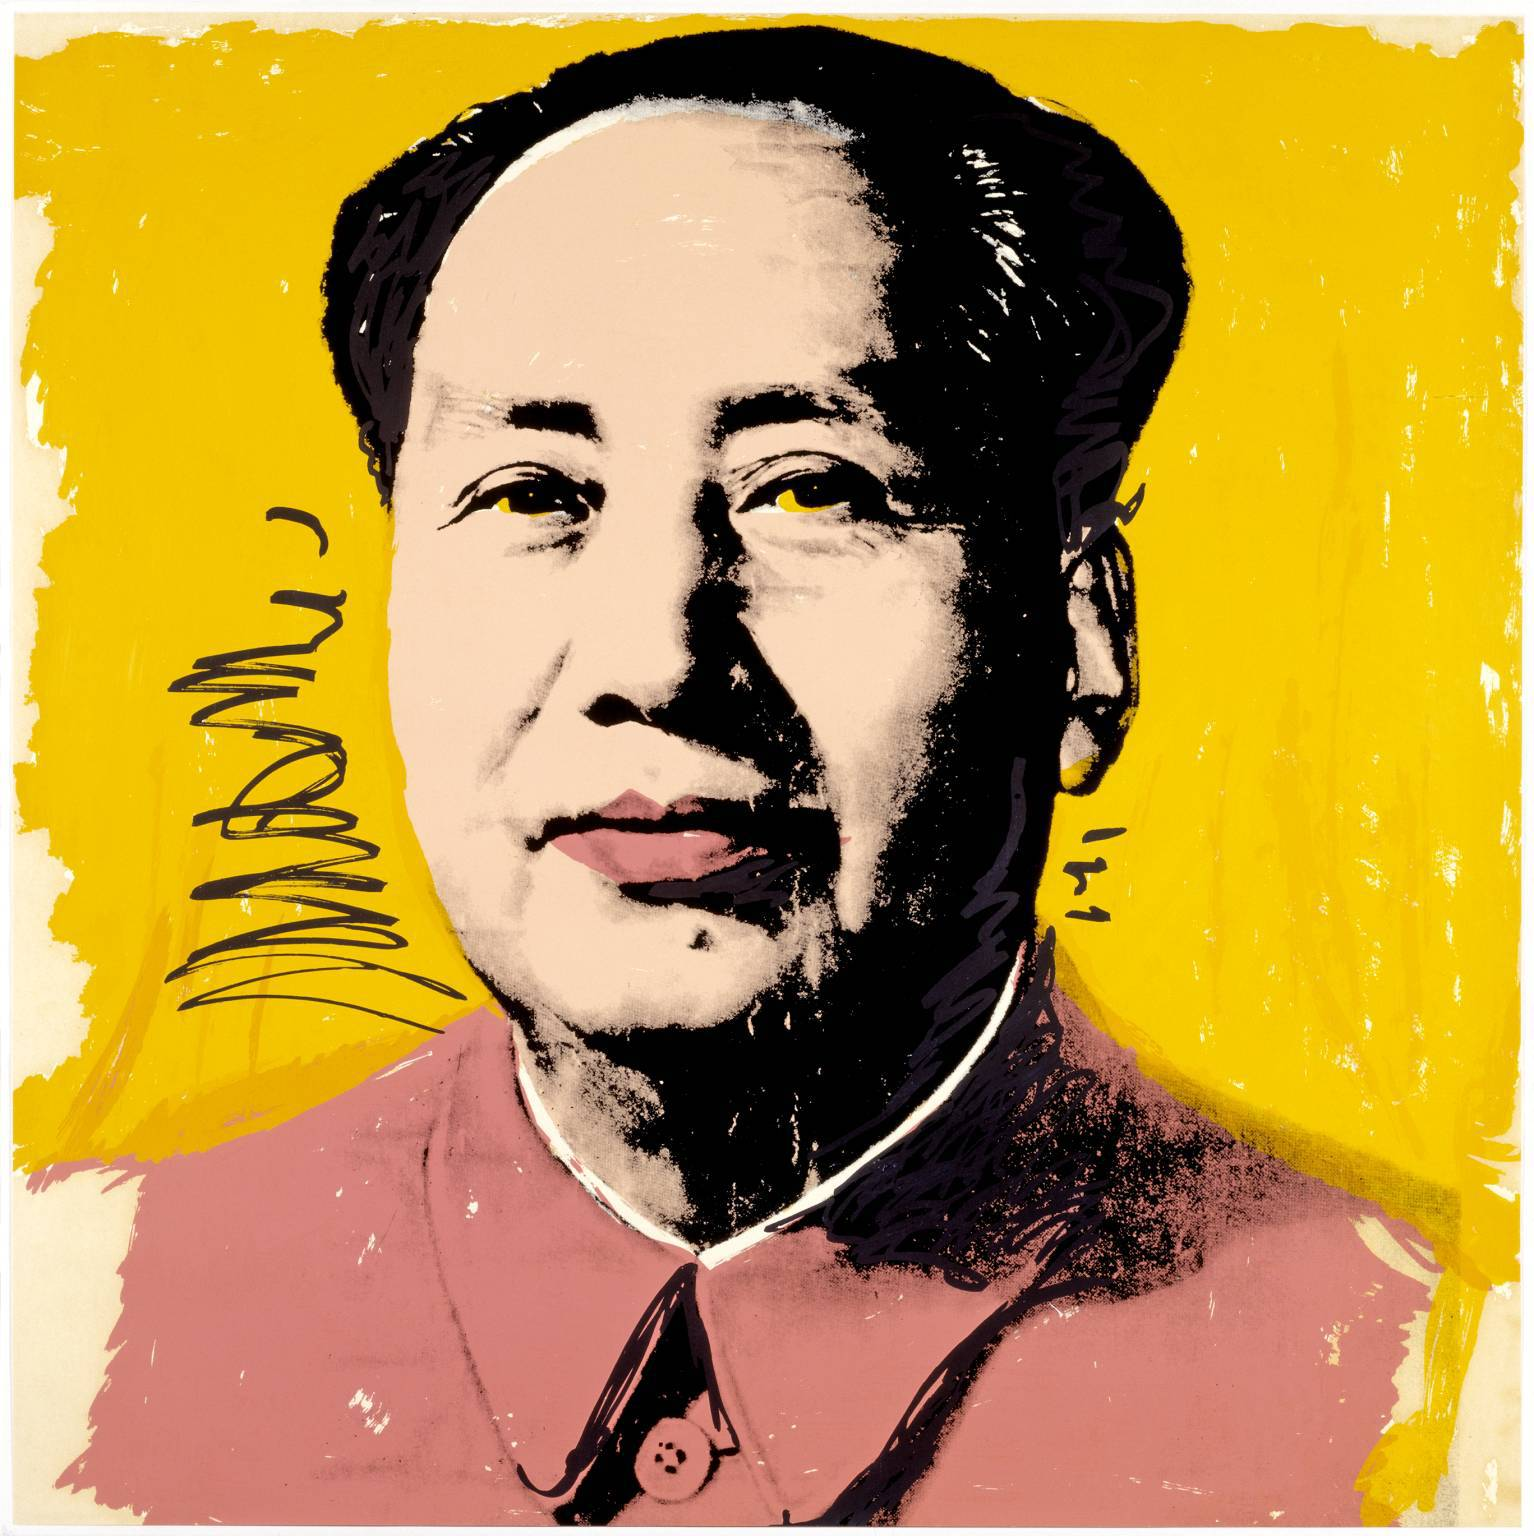 Famous painting Andy Warhol Chinese man wallpapers and images ...